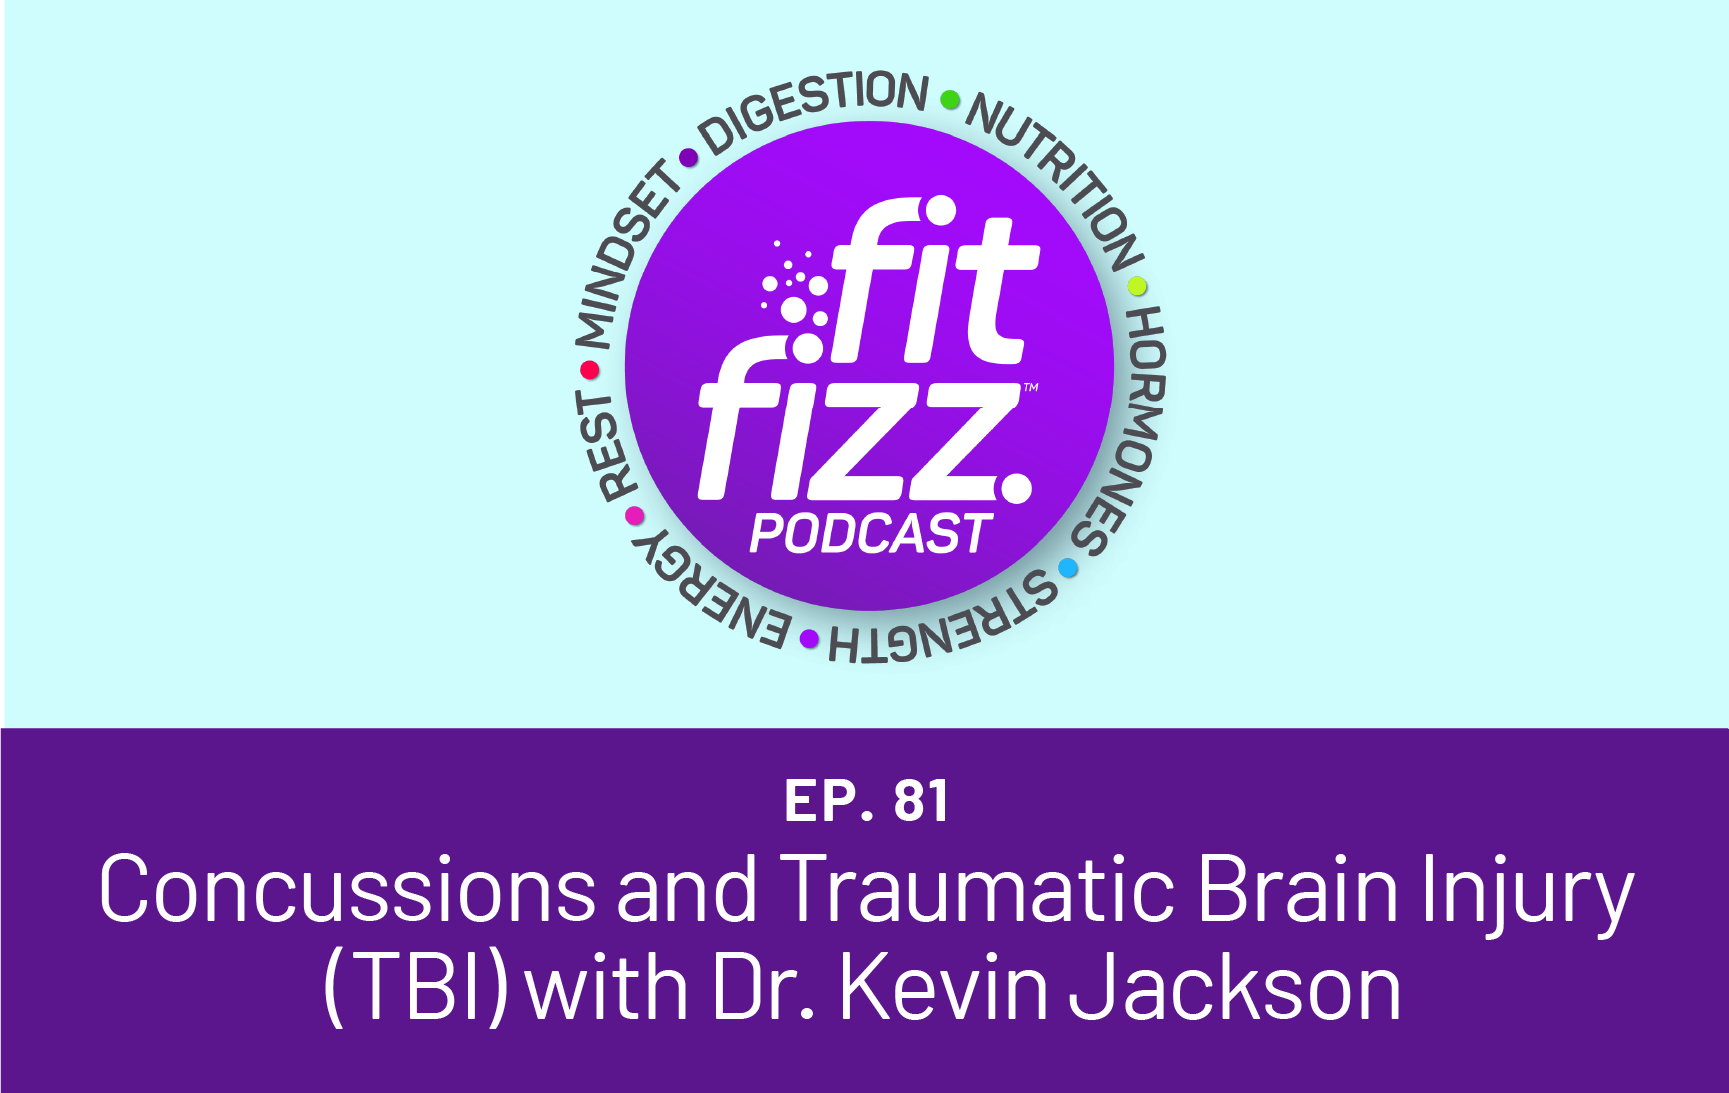 Ep. 81: Concussions and Traumatic Brain Injury (TBI) with Dr. Kevin Jackson